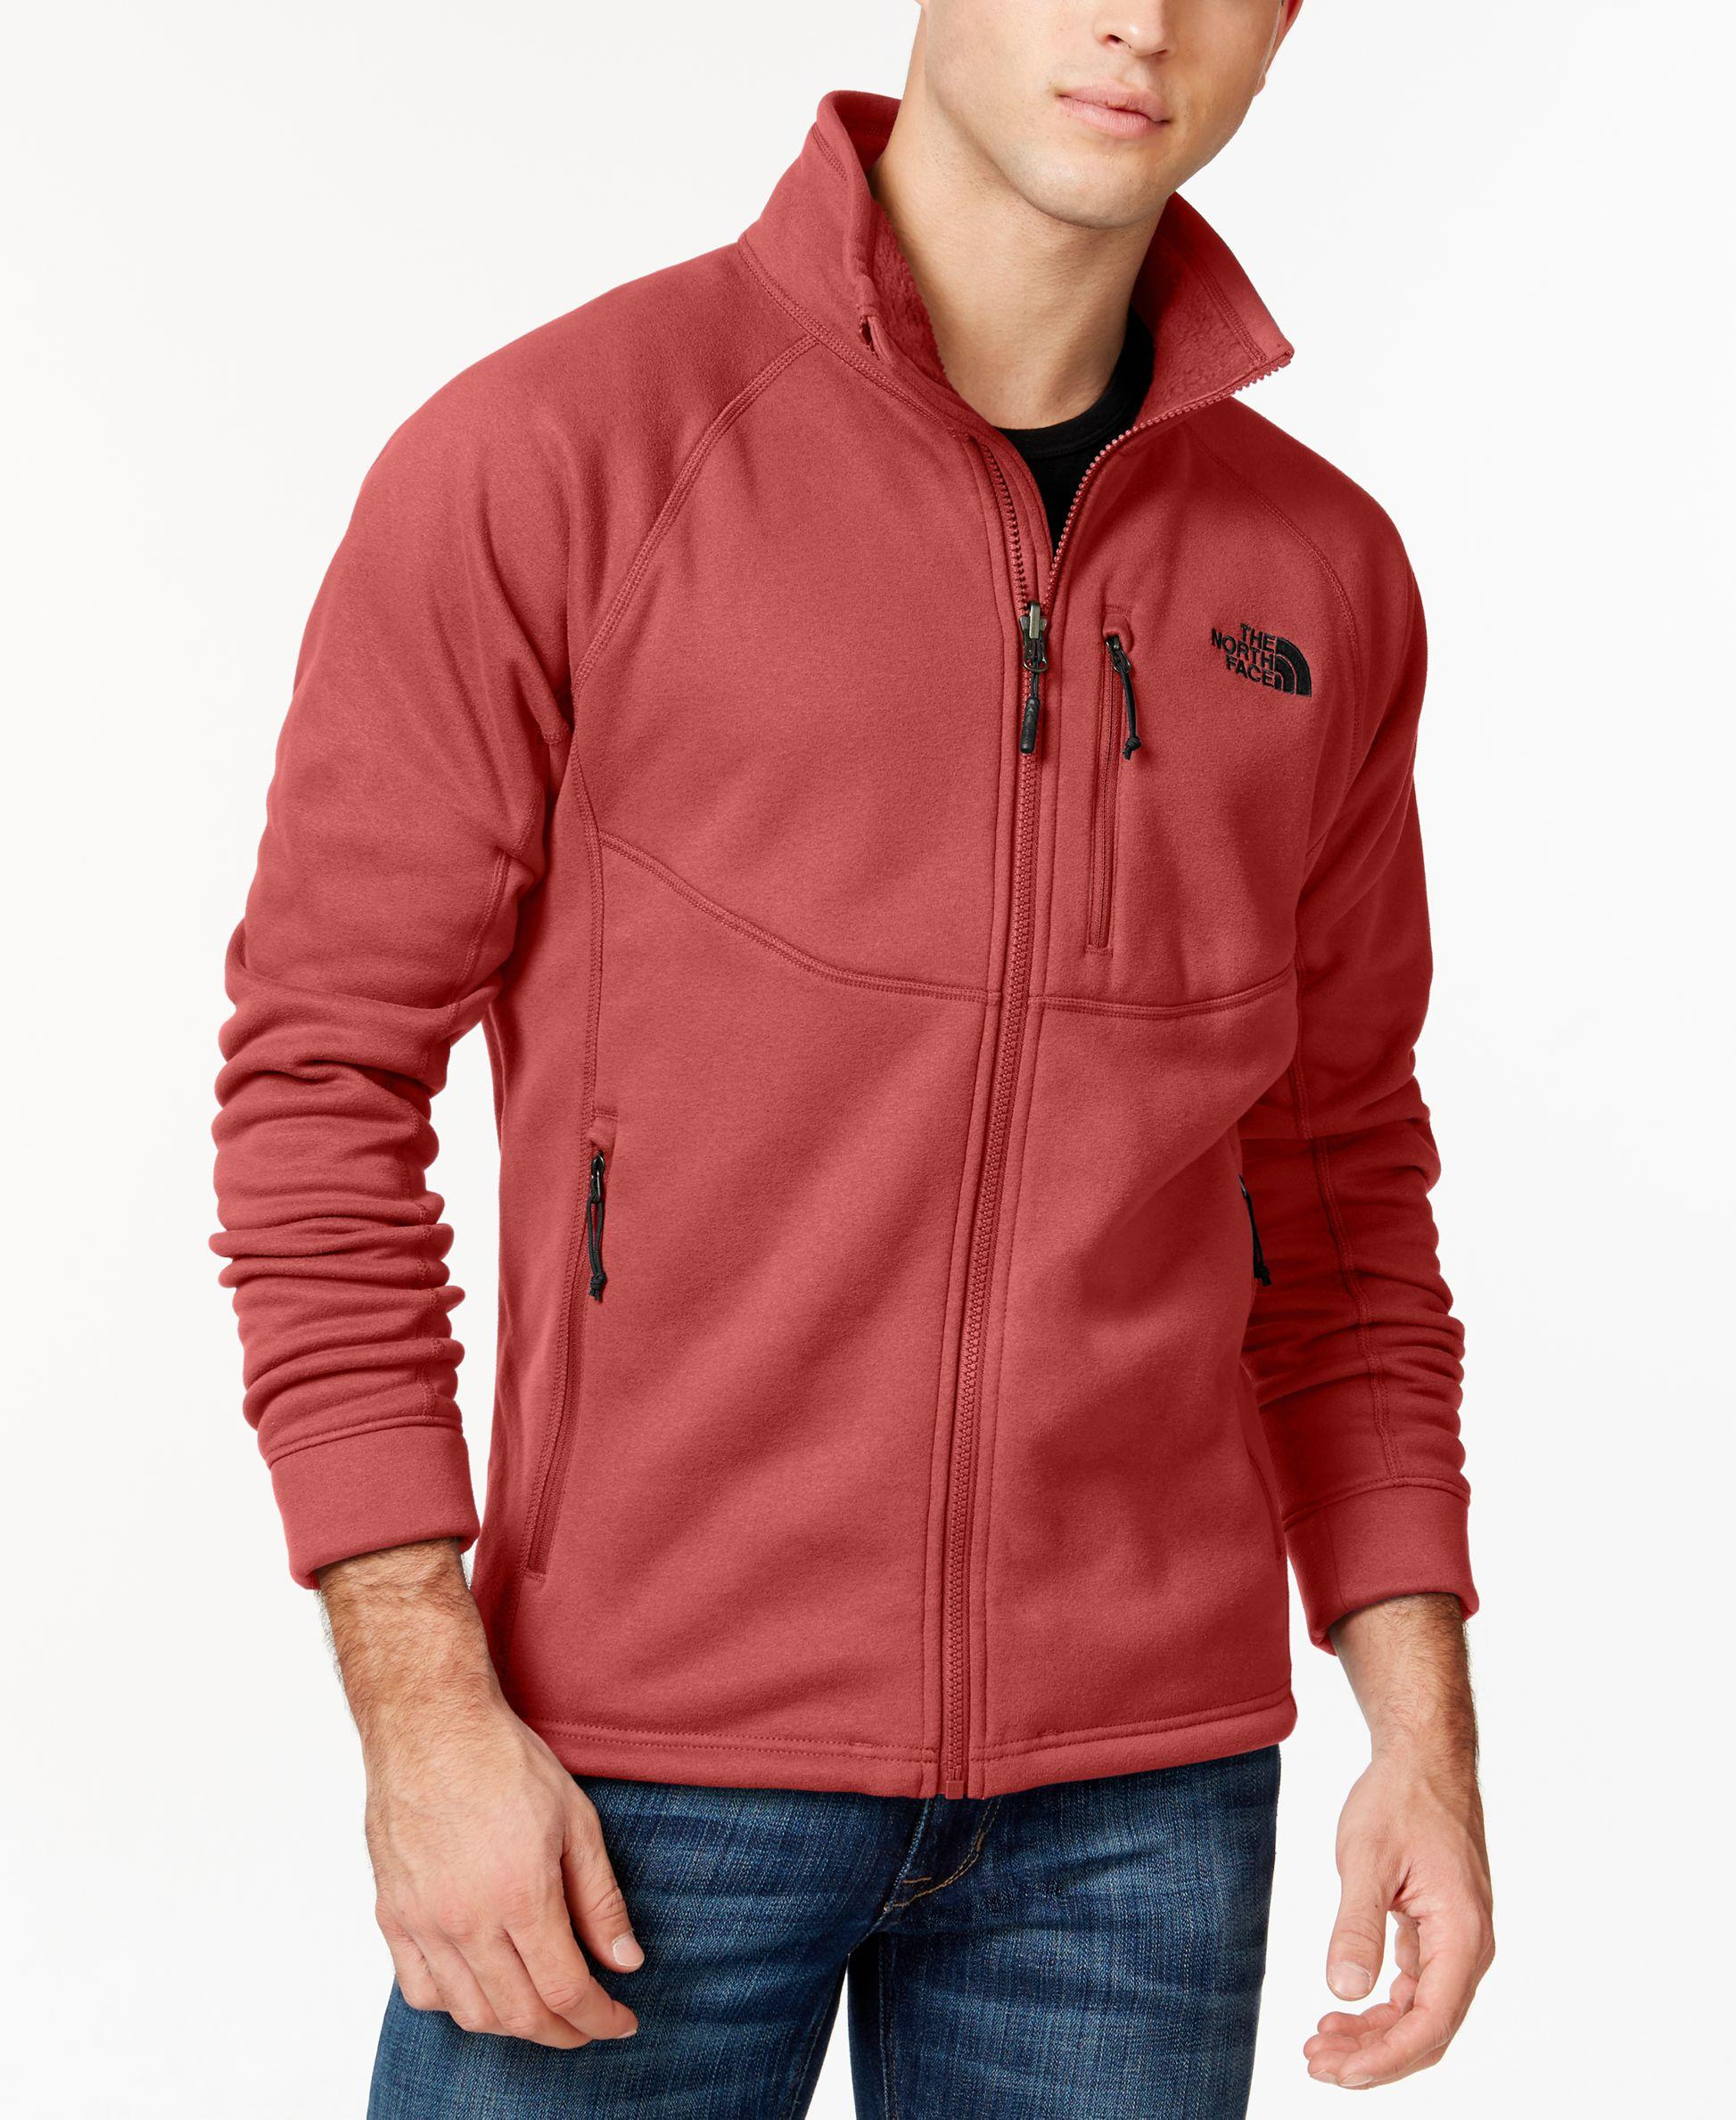 42b07d9e41b5 Lyst - The North Face Timber Full-zip Fleece Jacket in Red for Men